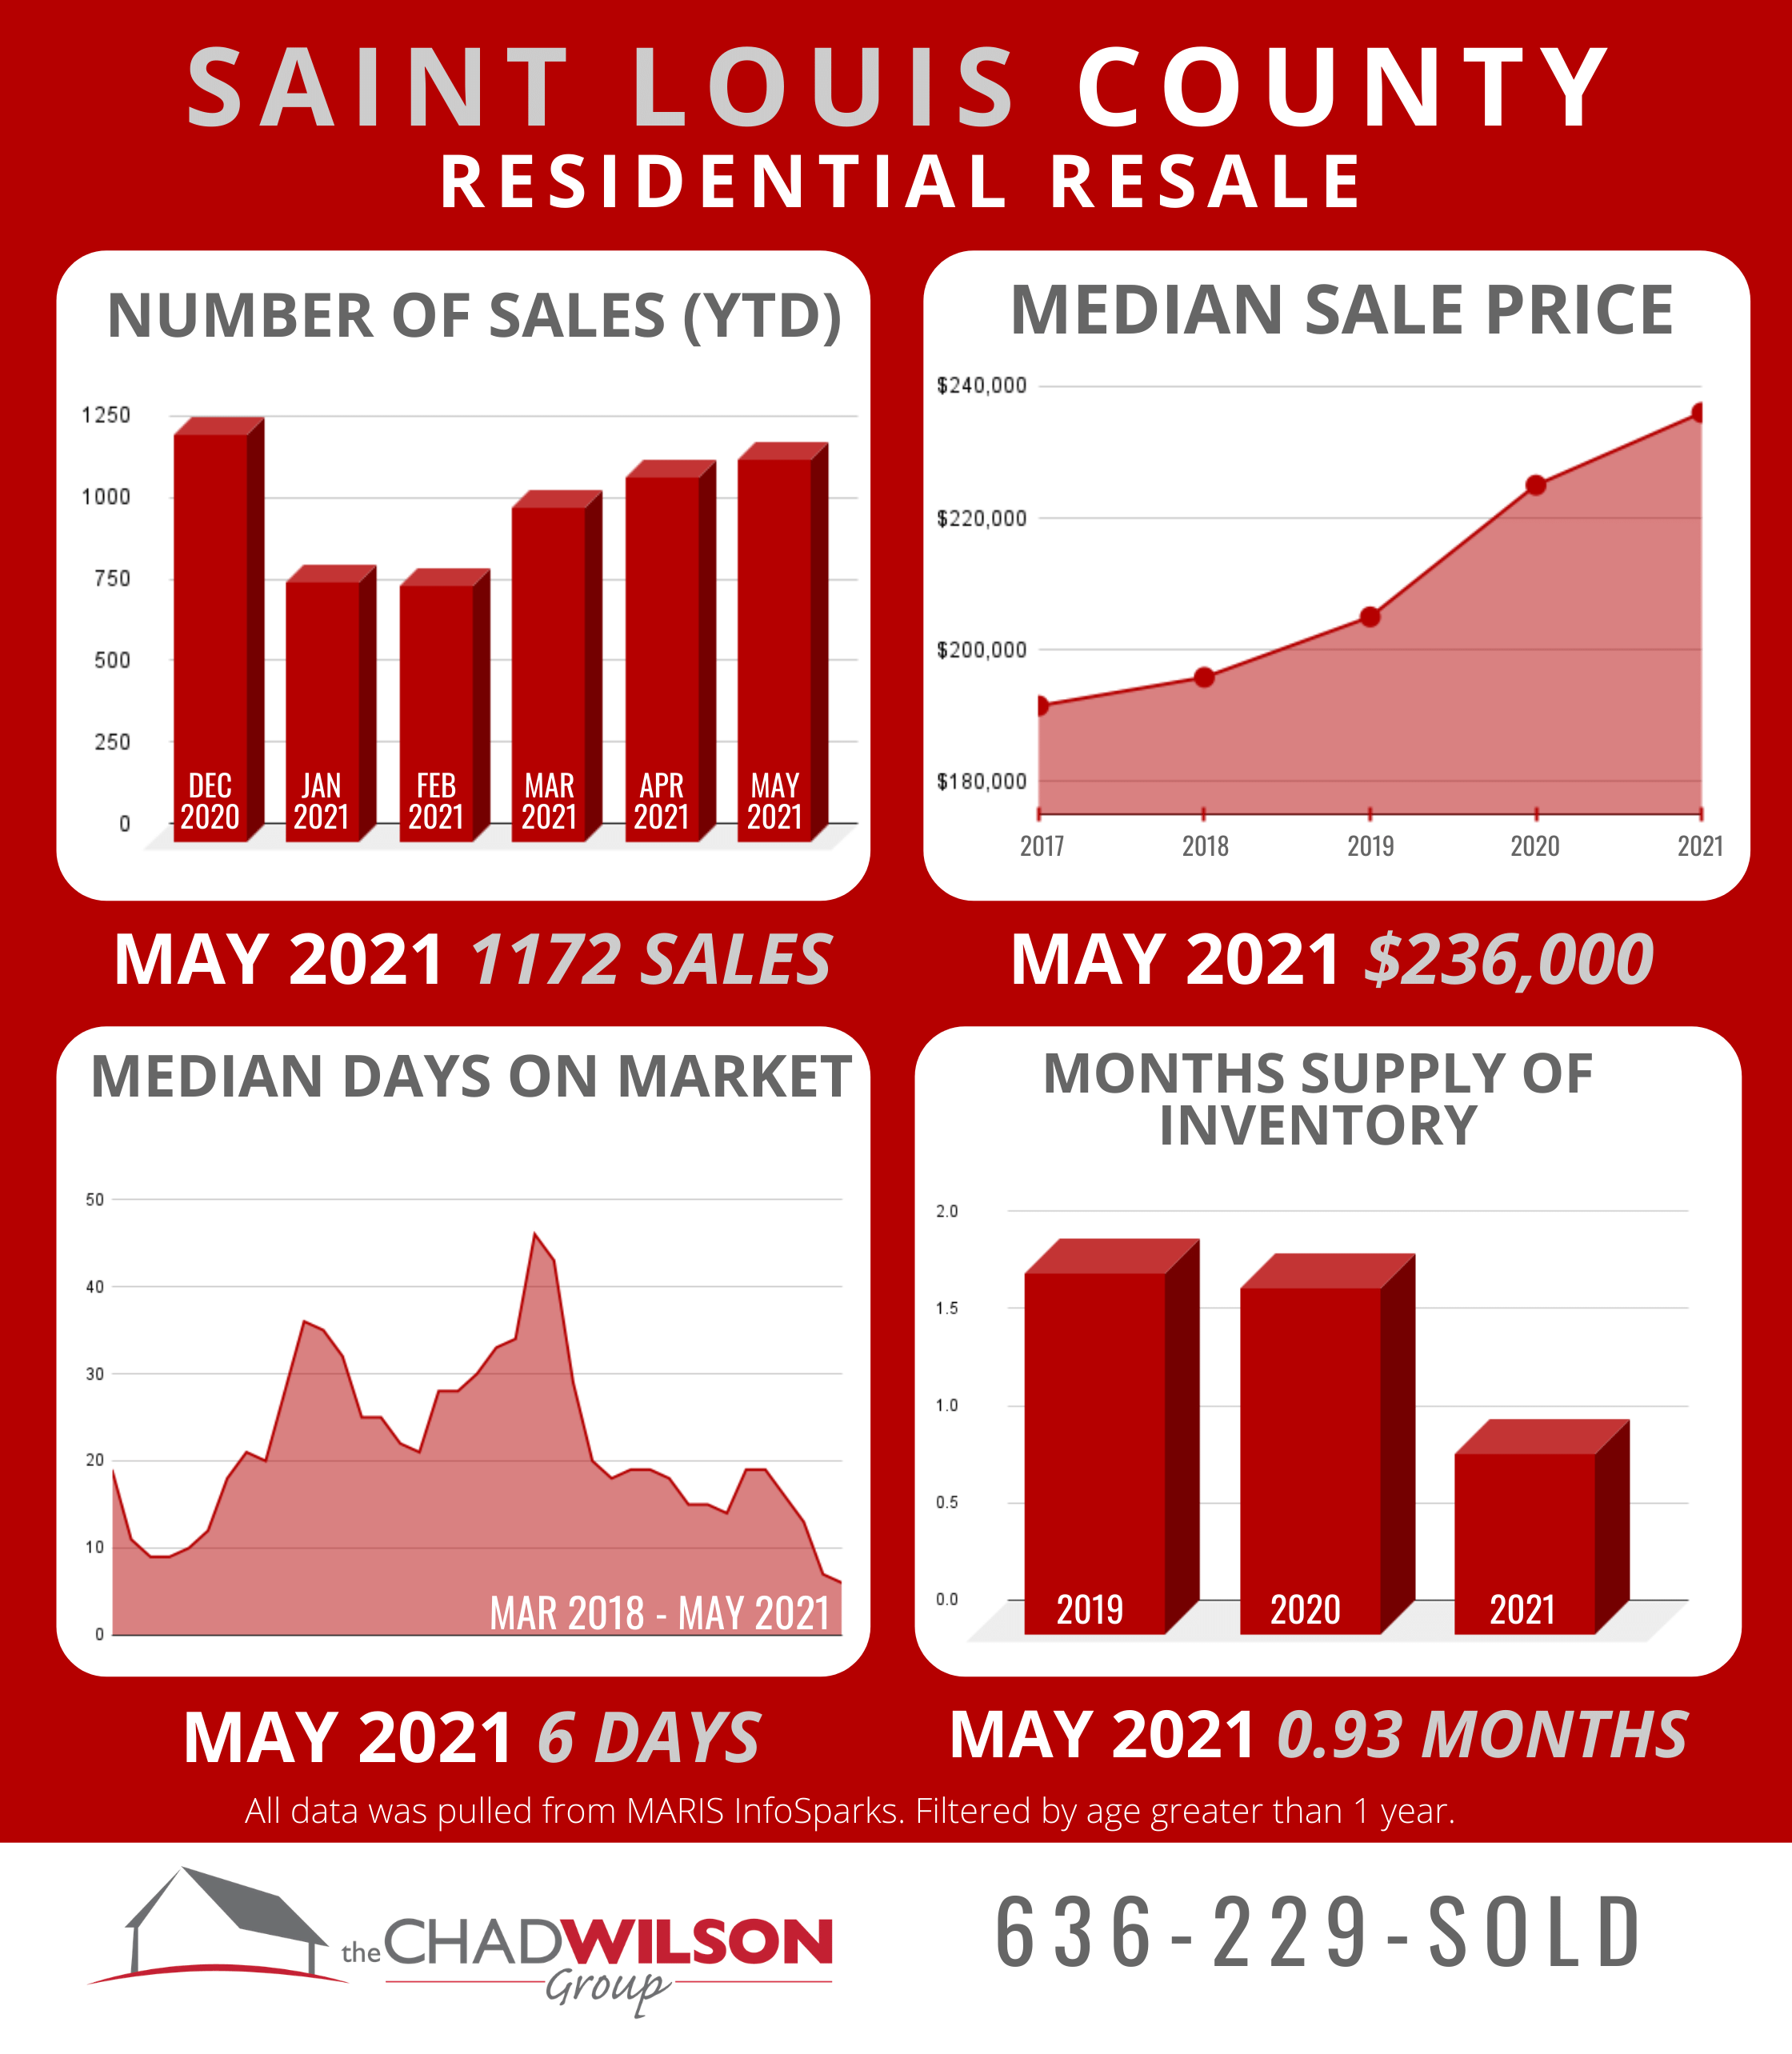 St. Louis County Real Estate Market May 2021